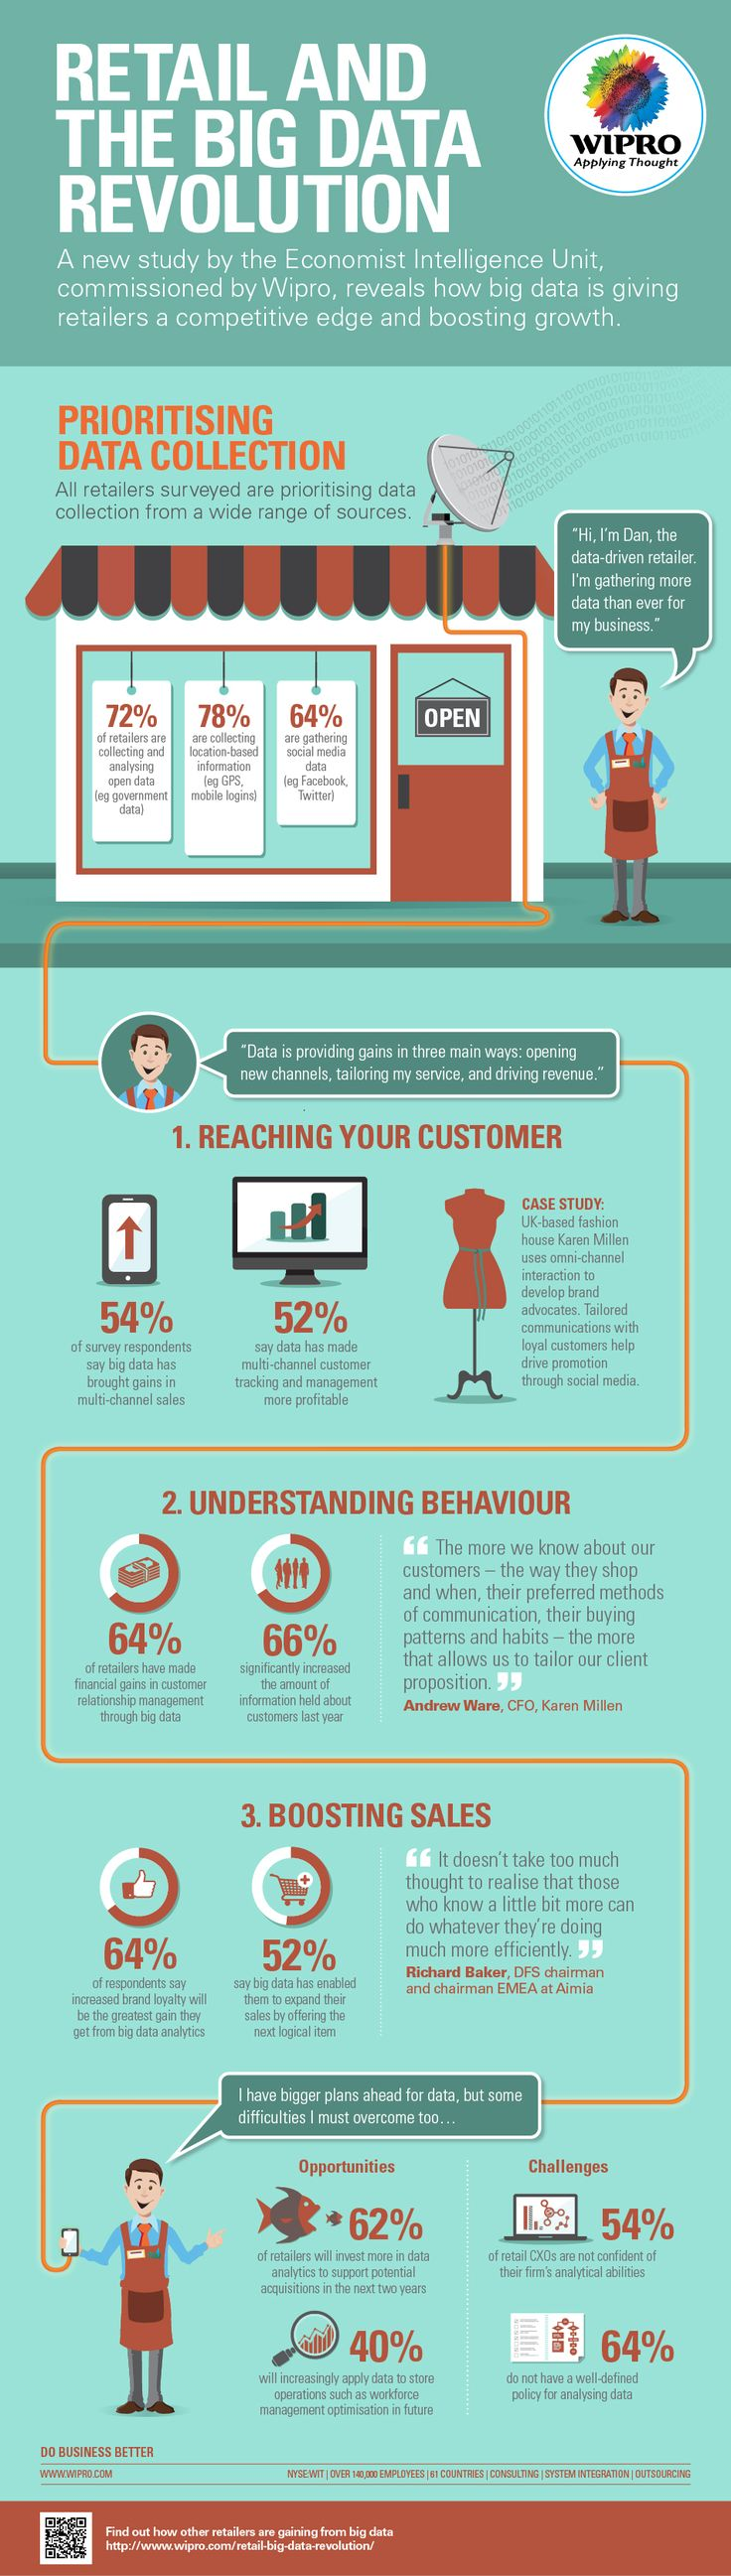 Retail And The Big Data Revolution   #Infographic #BigDataRevolution #CustomerService